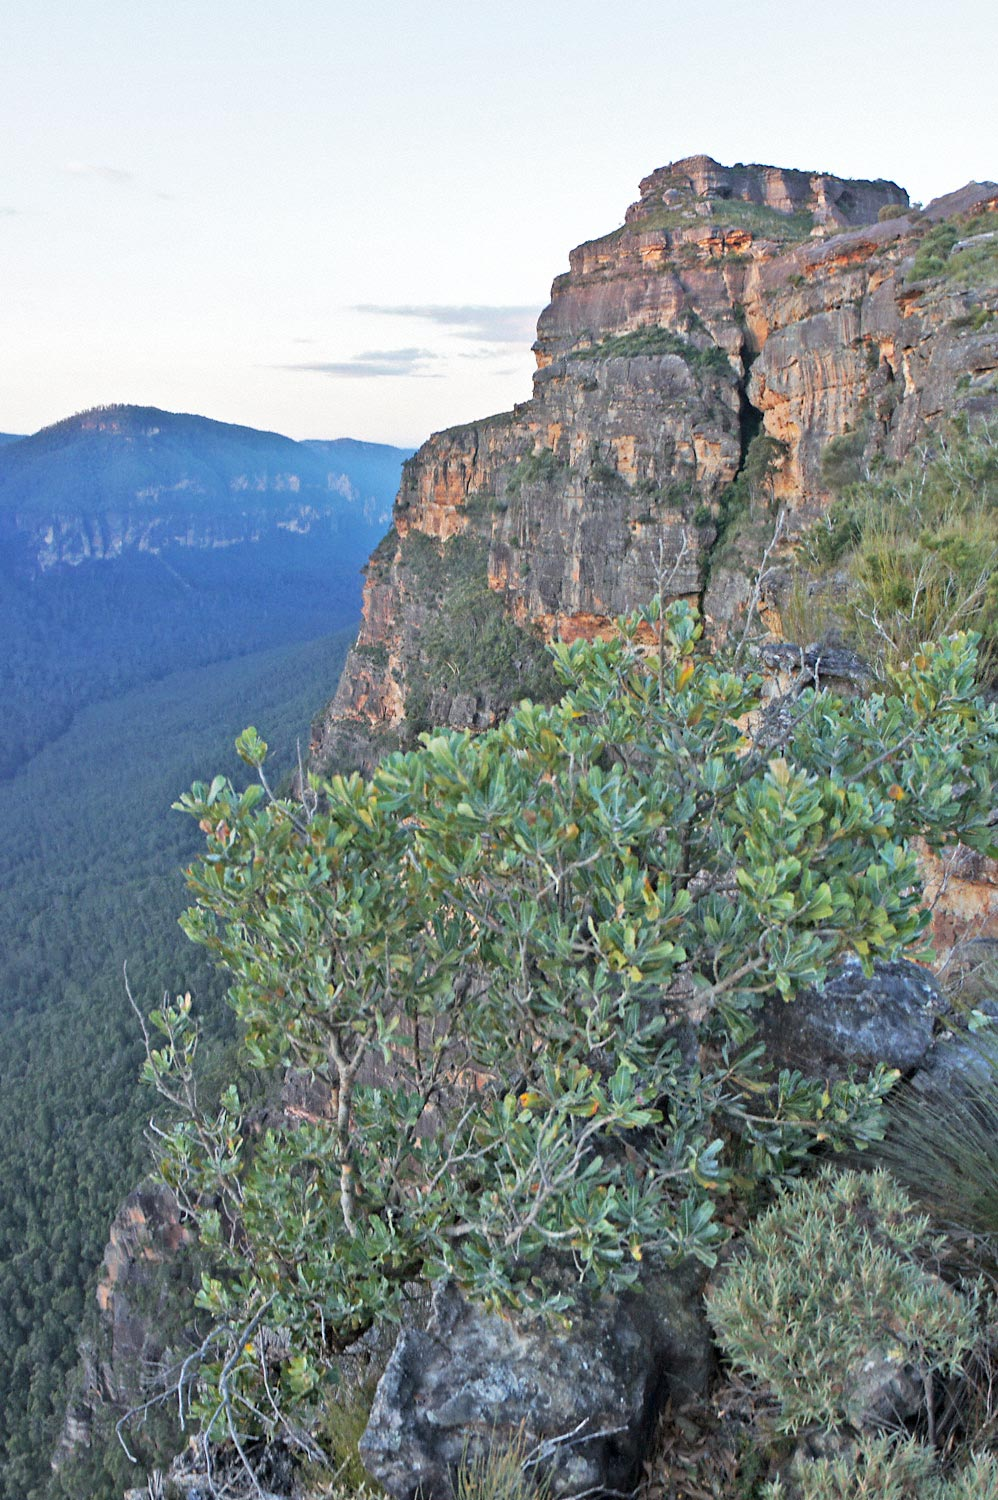 Warren-Hinder-LR-Butterbox-Point-Mt-Hay-looking-East.jpg